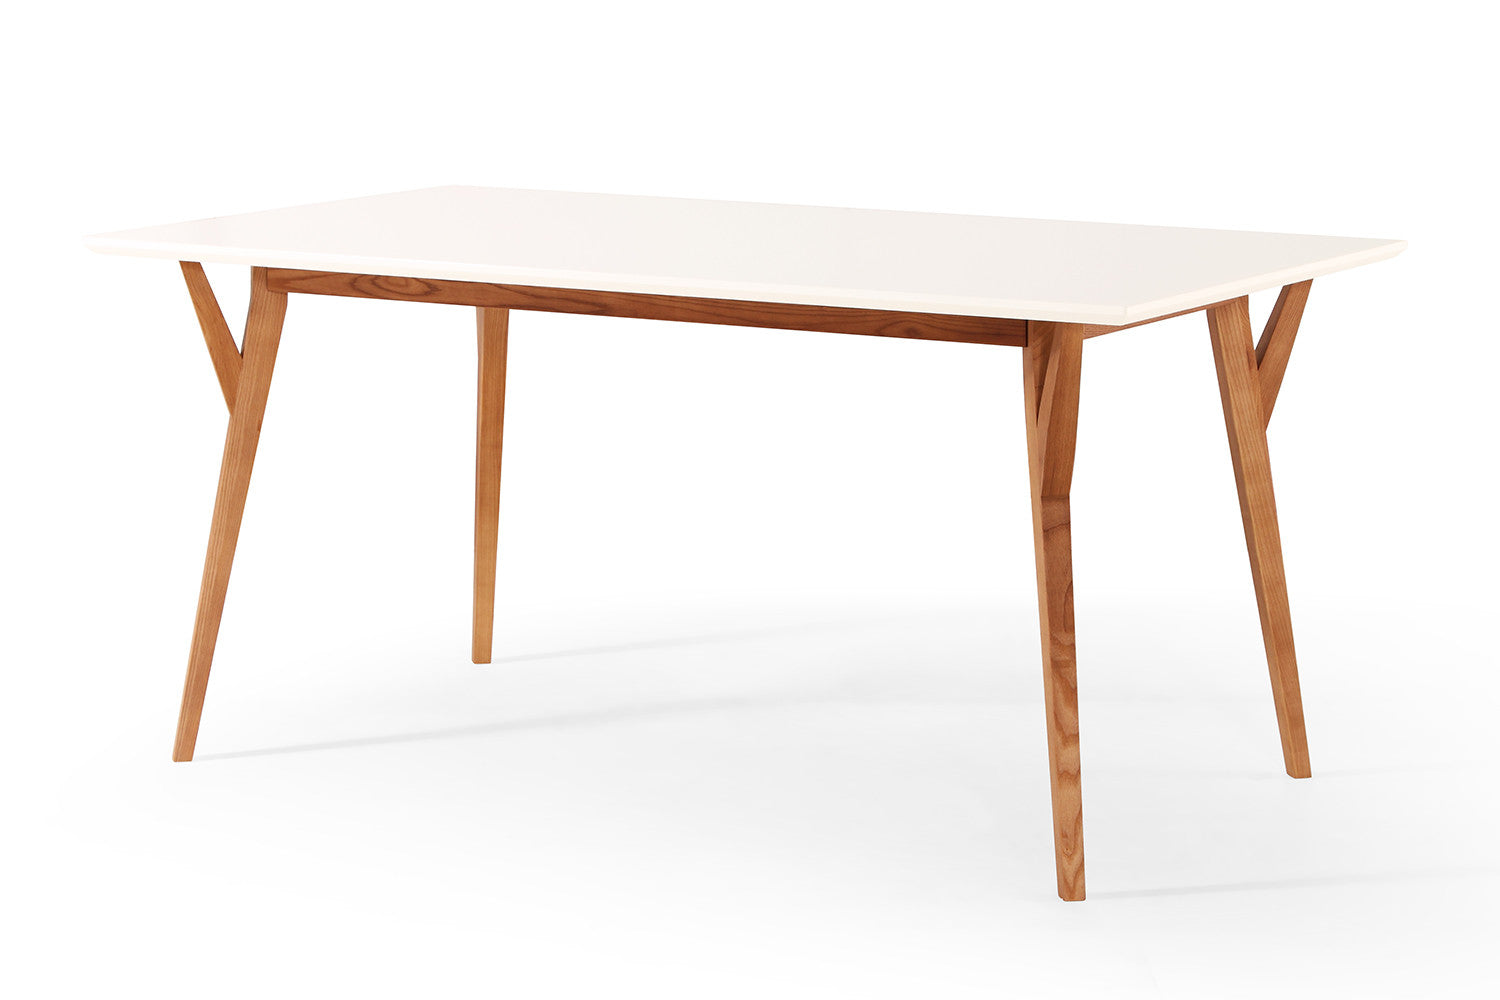 Table salle a manger blanche design valdiz for Table a manger blanche design